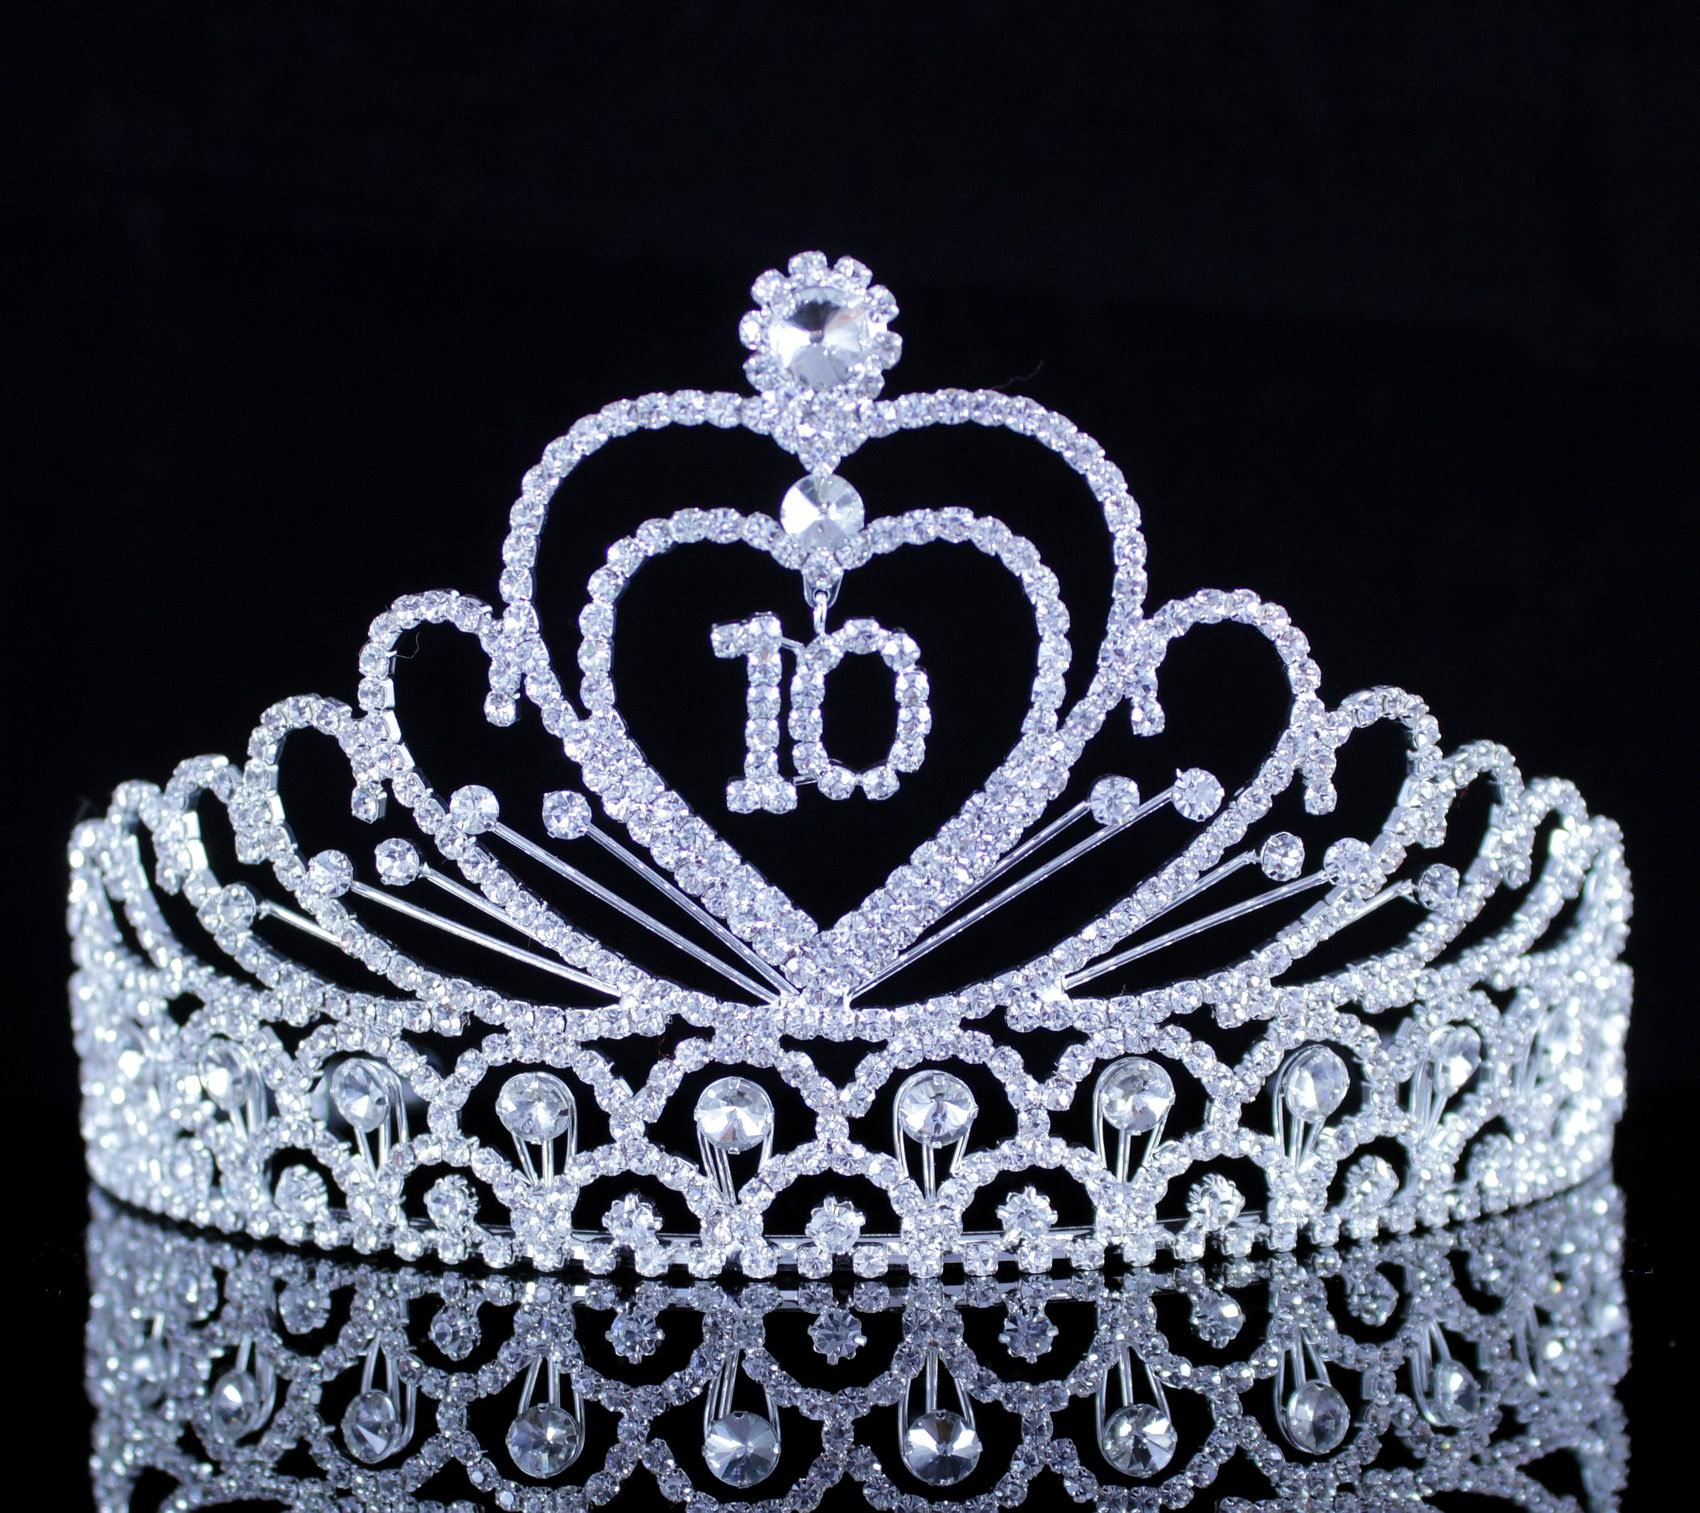 Janefashions Ten Years Old 10-Year-Old 10th Birthday Party Clear White Austrian Rhinestone Metal Girl Girl's Princess Tiara Crown With Hair Combs Jewelry Headband Headpiece T890 Silver by Janefashions